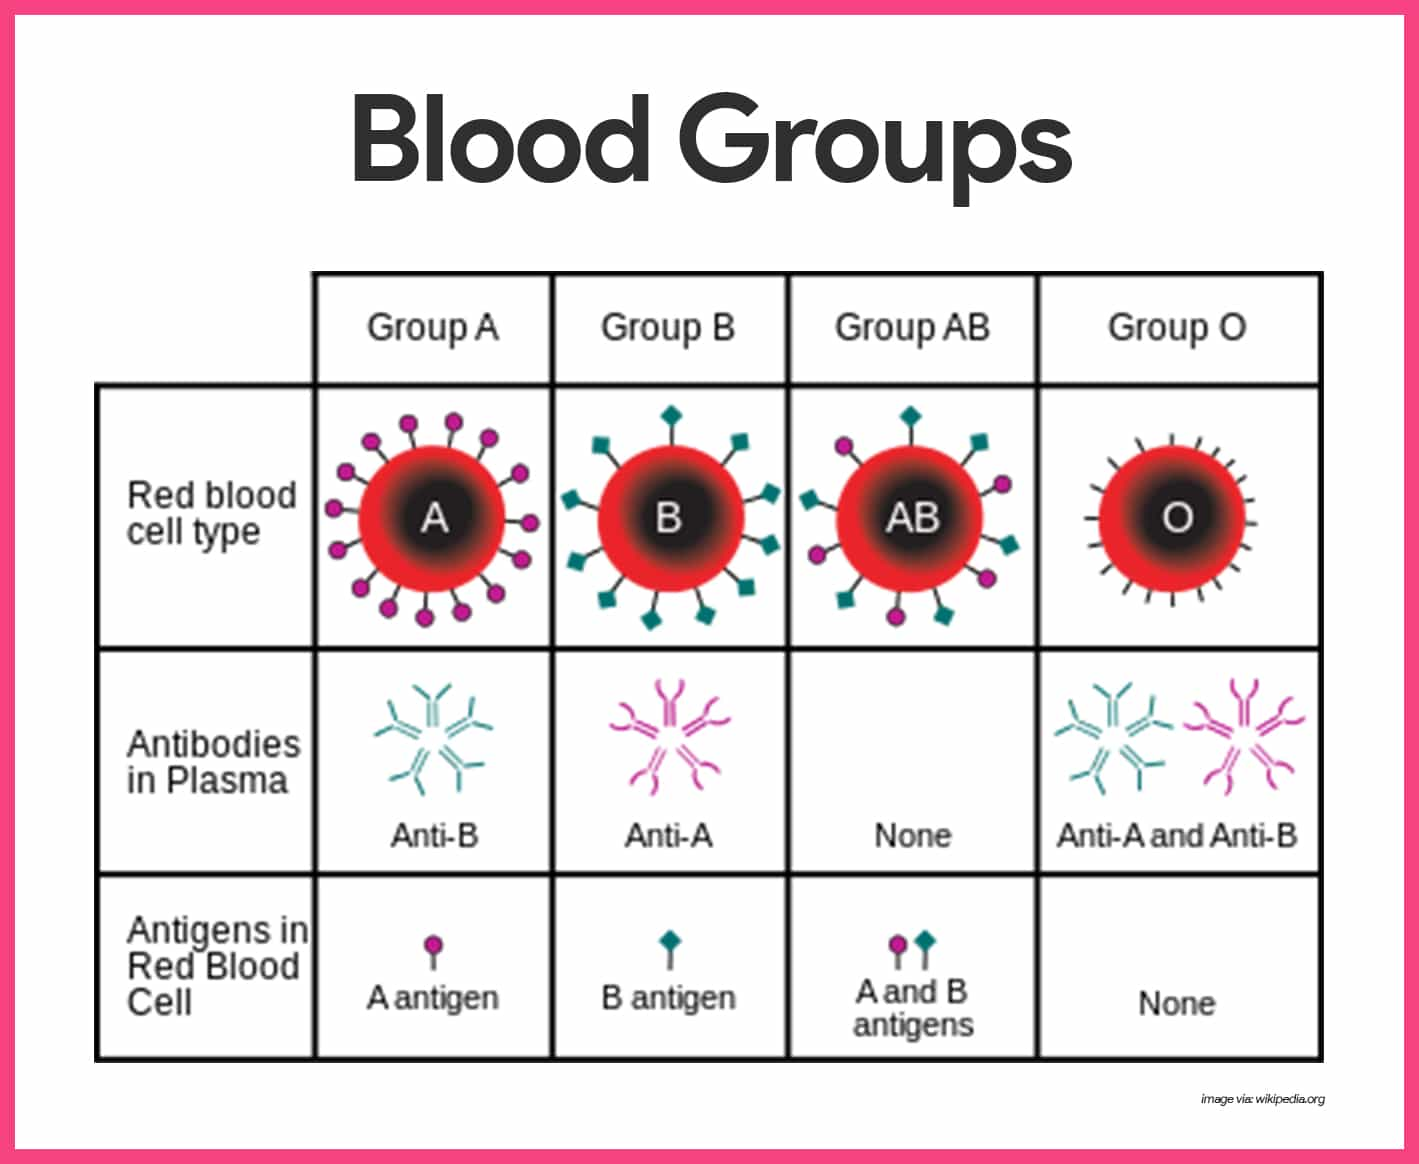 Blood Anatomy And Physiology Study Guide For Nurses Red White Cell Diagram Of Cells Human Groups